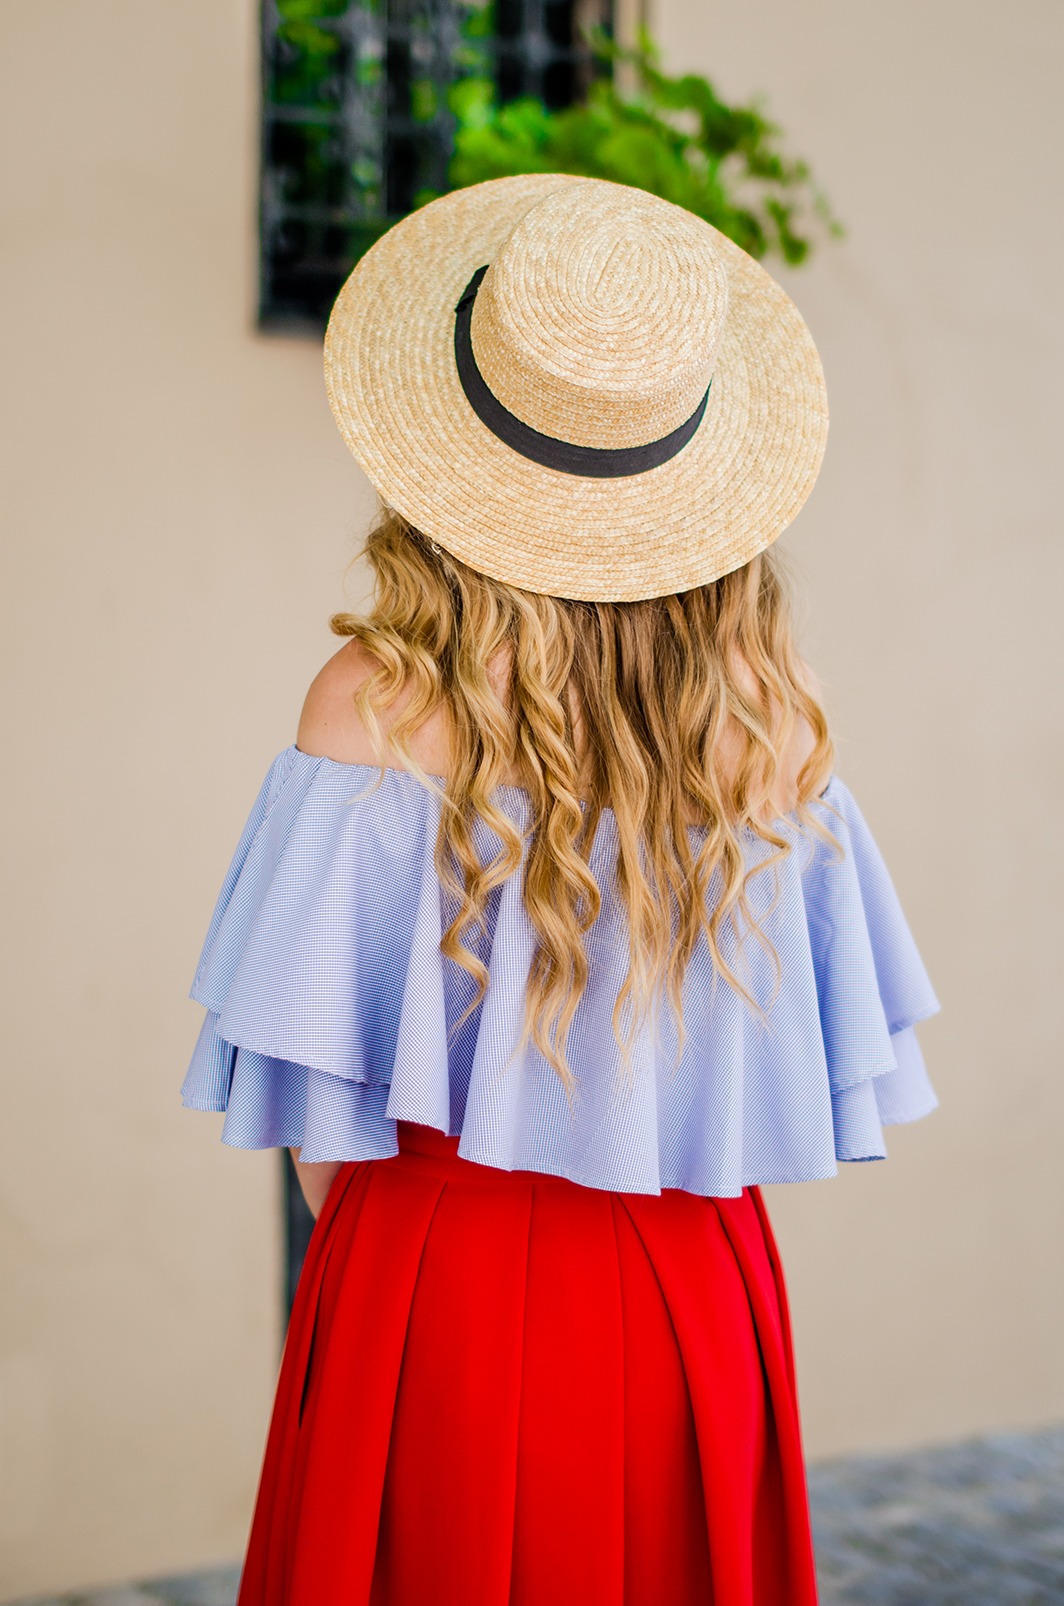 off-shoulder-blouse-red-midi-skirt-straw-hat (17)